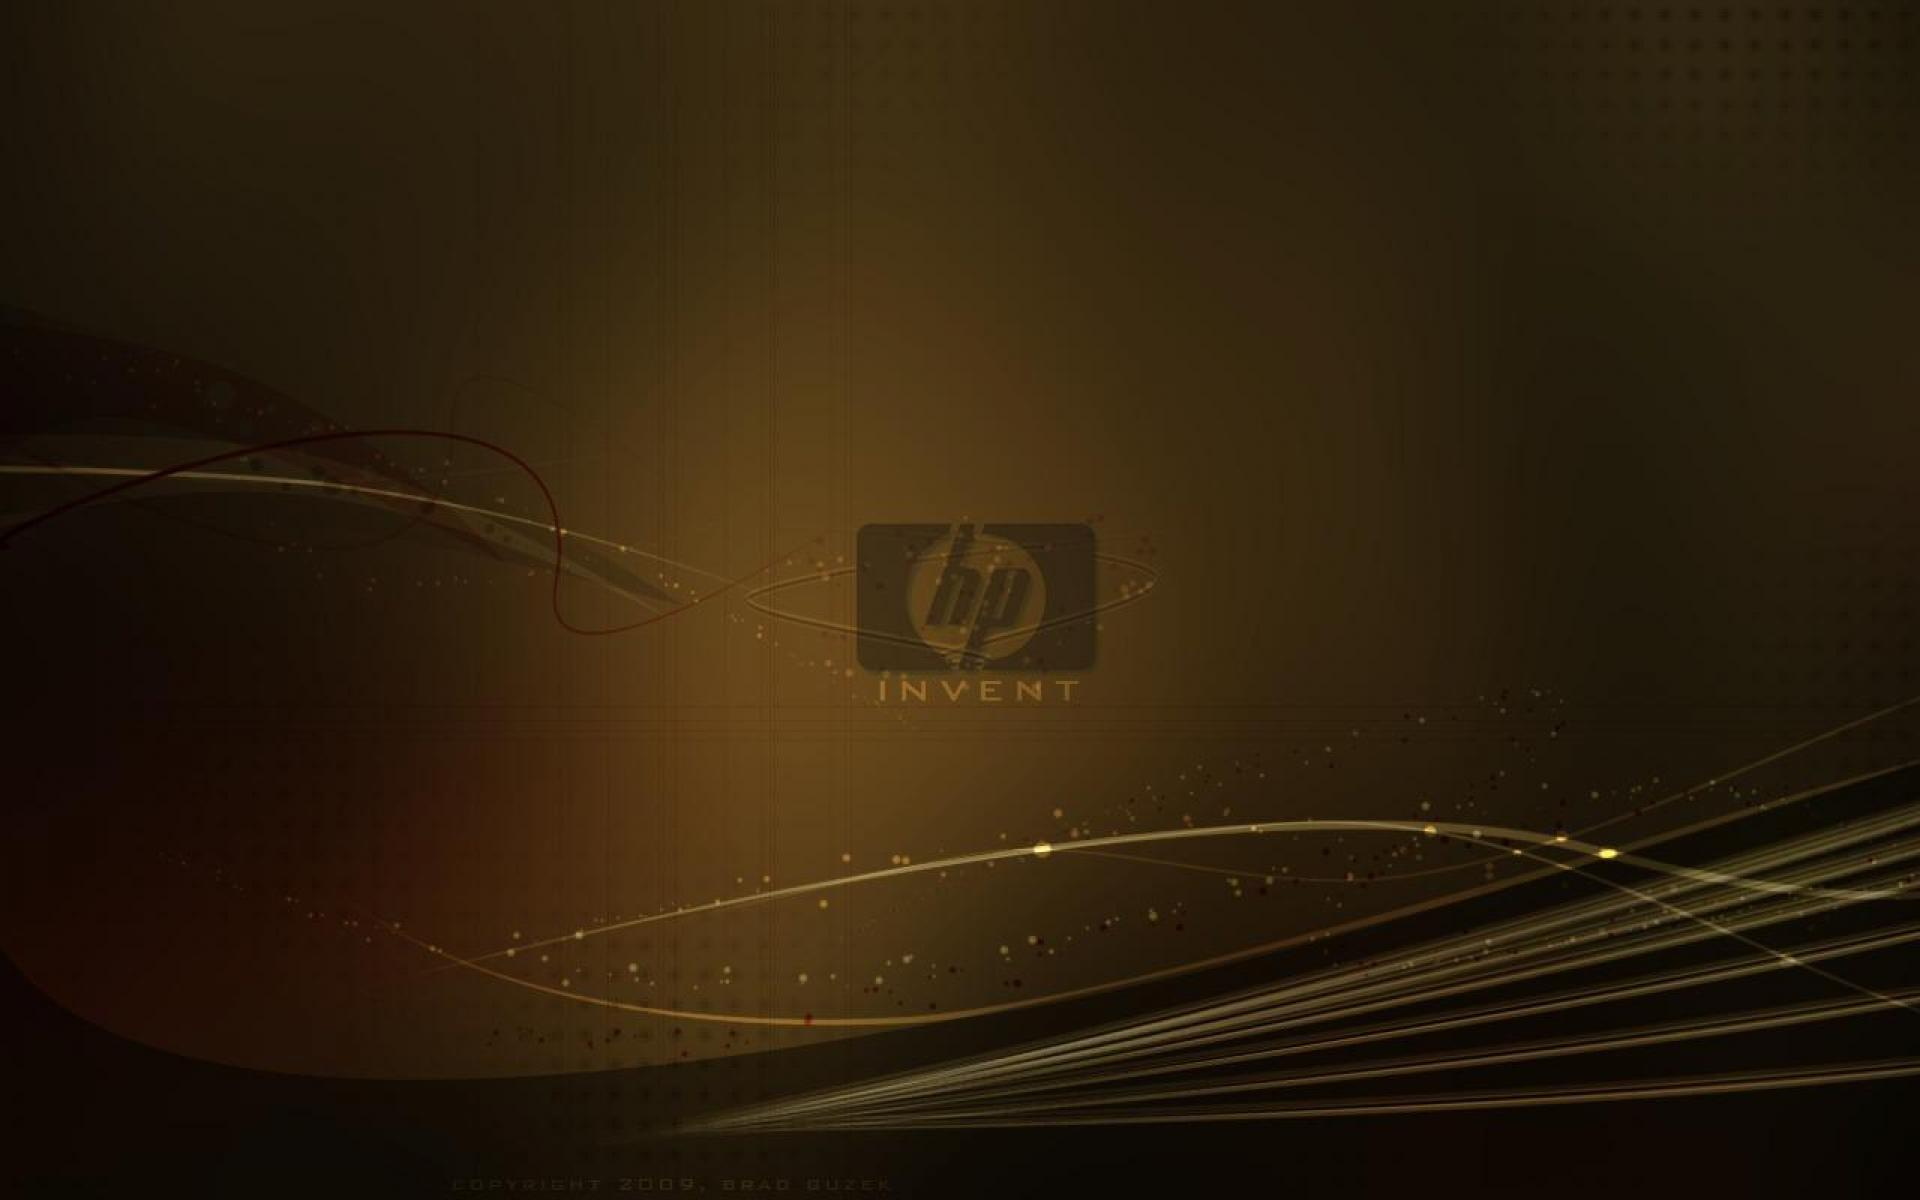 Hp pavillion   86663   High Quality and Resolution Wallpapers on 1920x1200